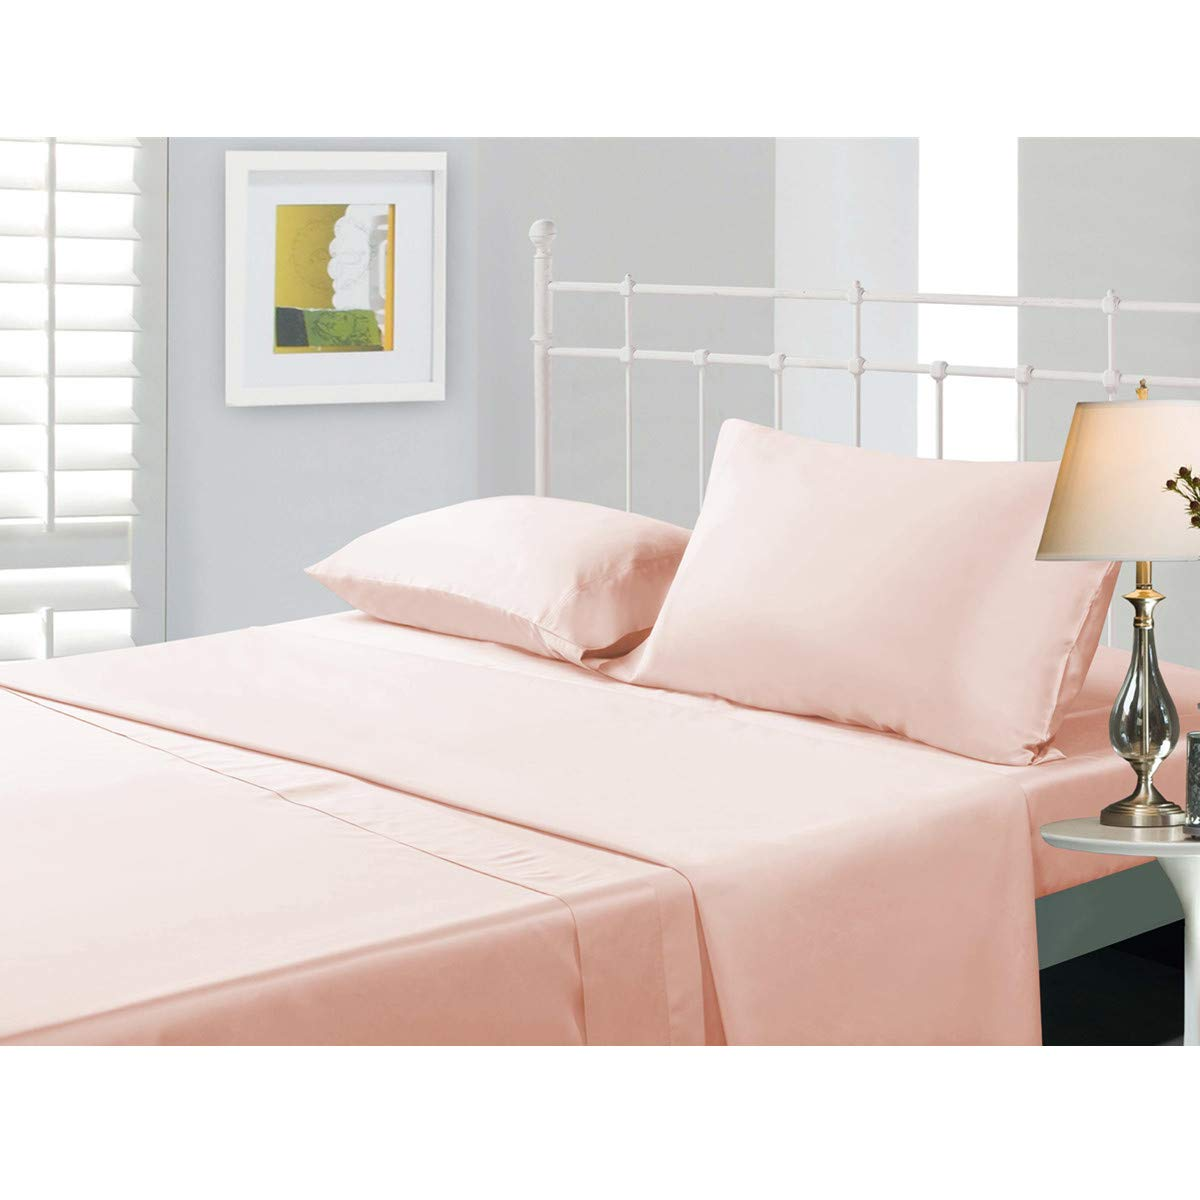 Naturefield Bamboo Sheets Set Cal King Pink 4 Piece Bamboo Cotton 15 Inch Deep Pocket Cozy Soft Breathable Wrinkle Free Flat Fitted Bedding Set For Home And Hotel